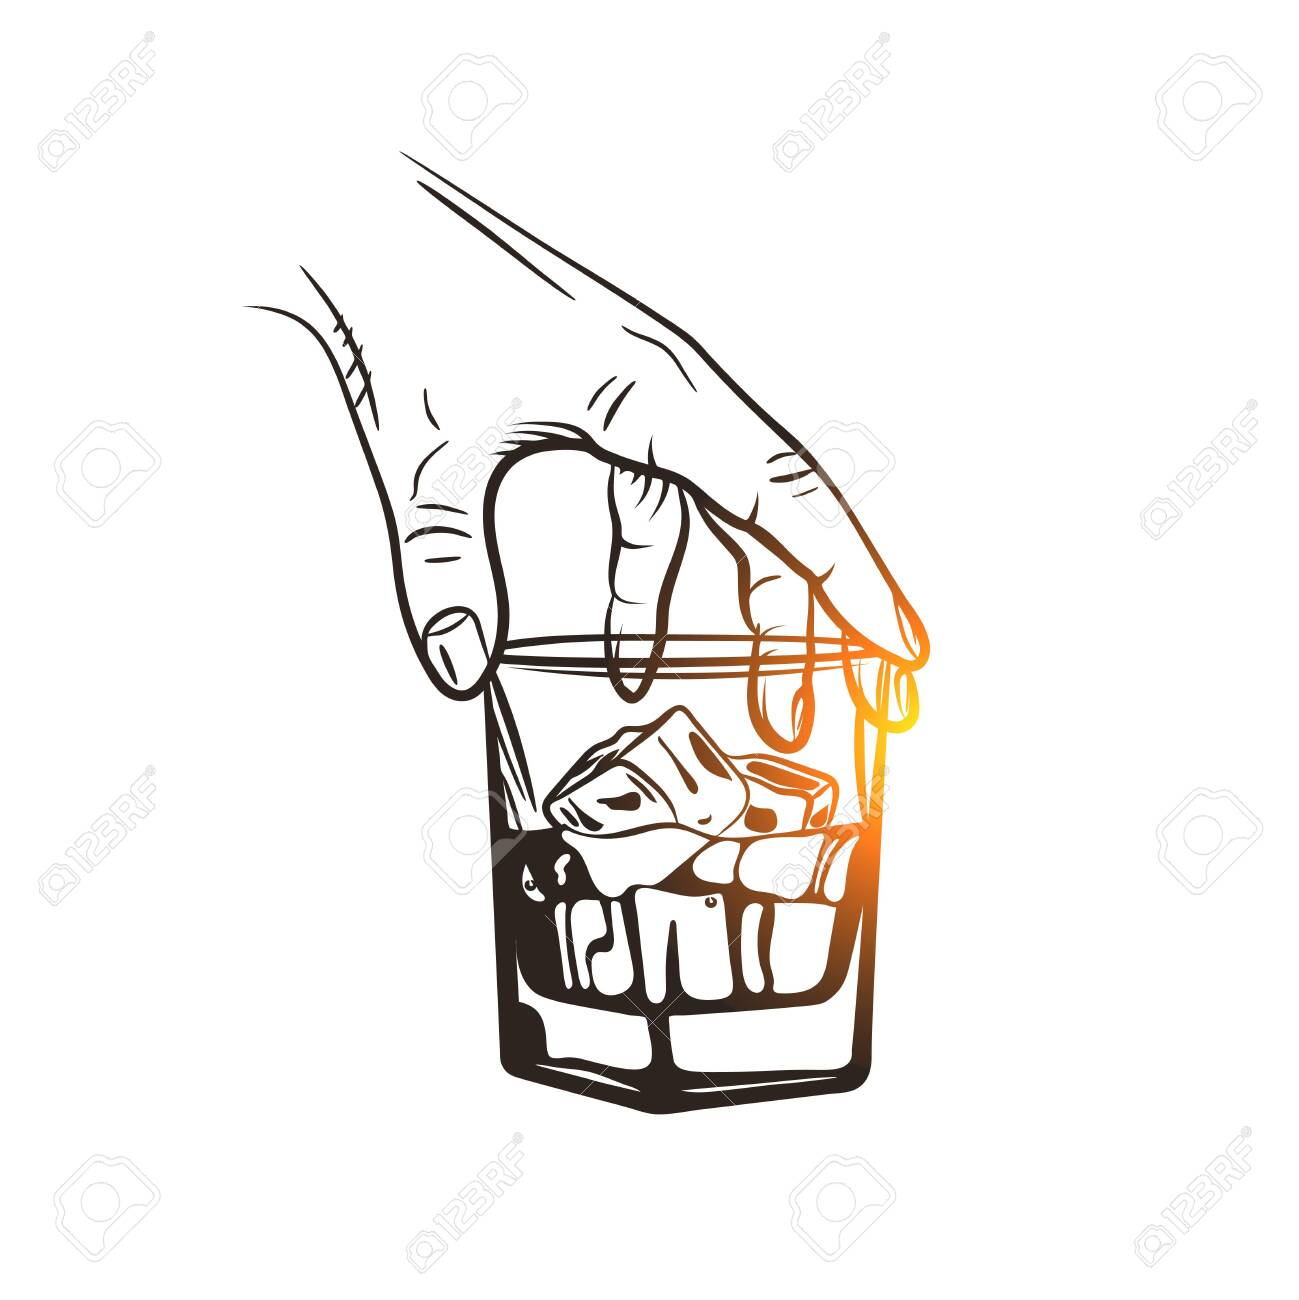 Hand holding a glass of whiskey with ice cubes. Whiskey glass. Hand drawn drink. - 152413349